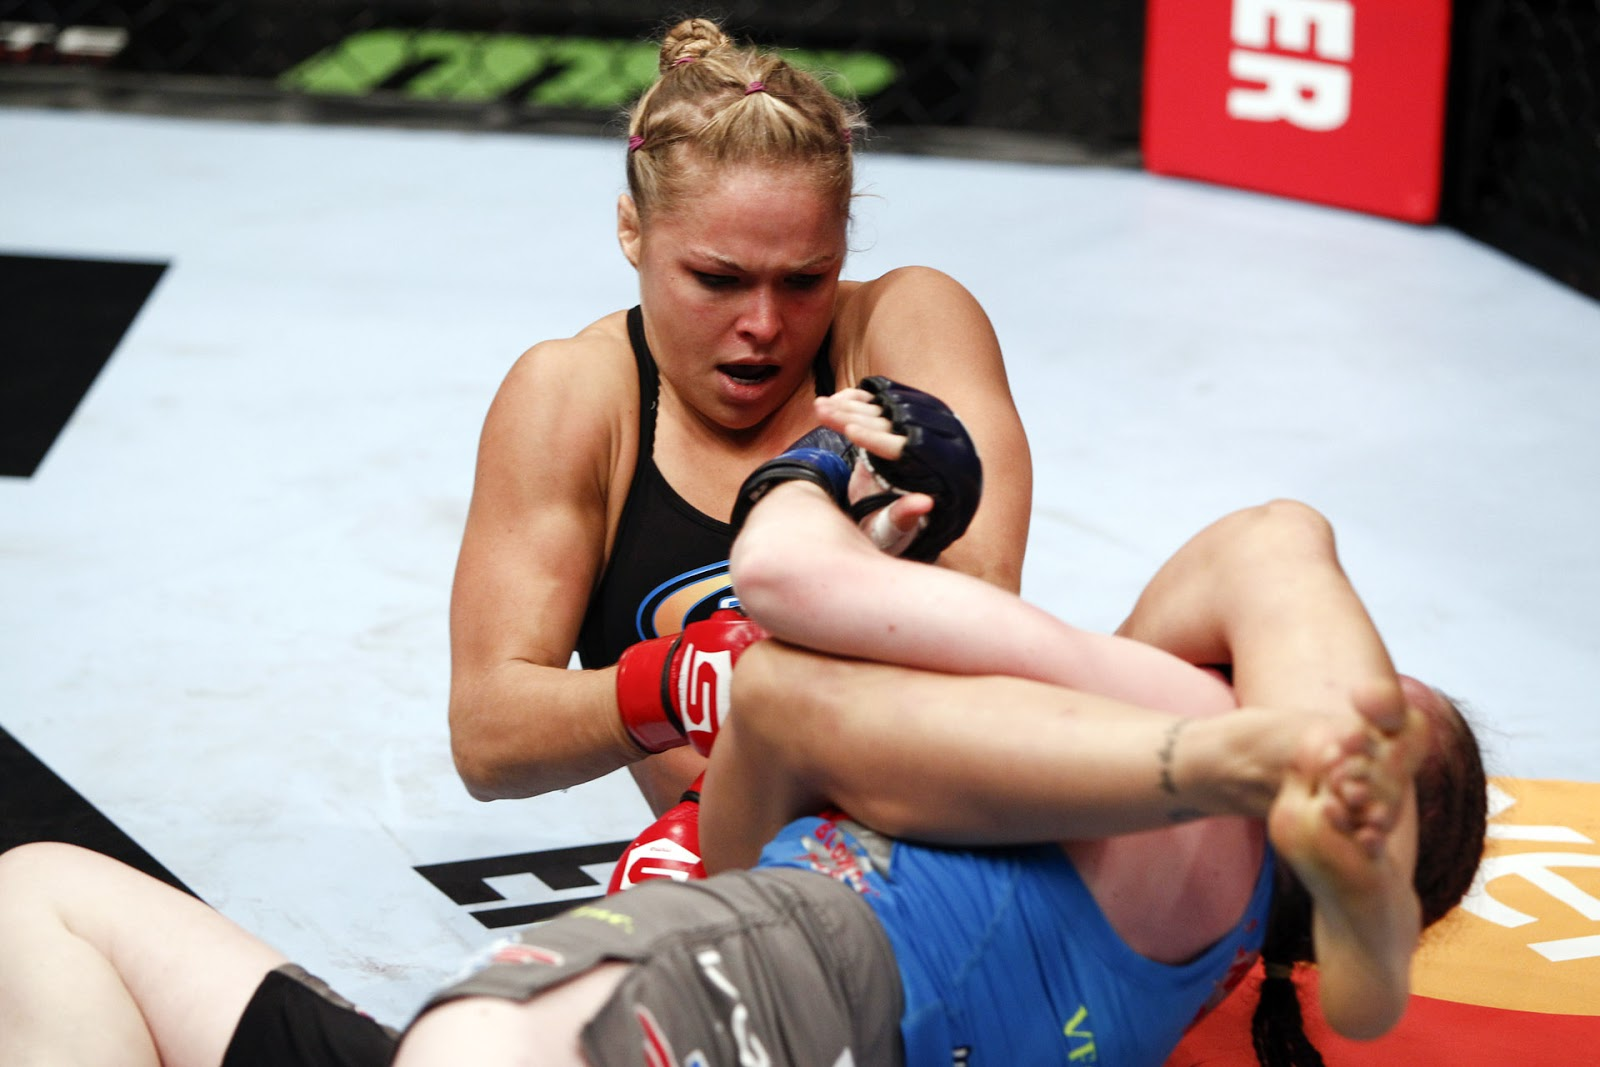 Ronda Rousey Hot 10